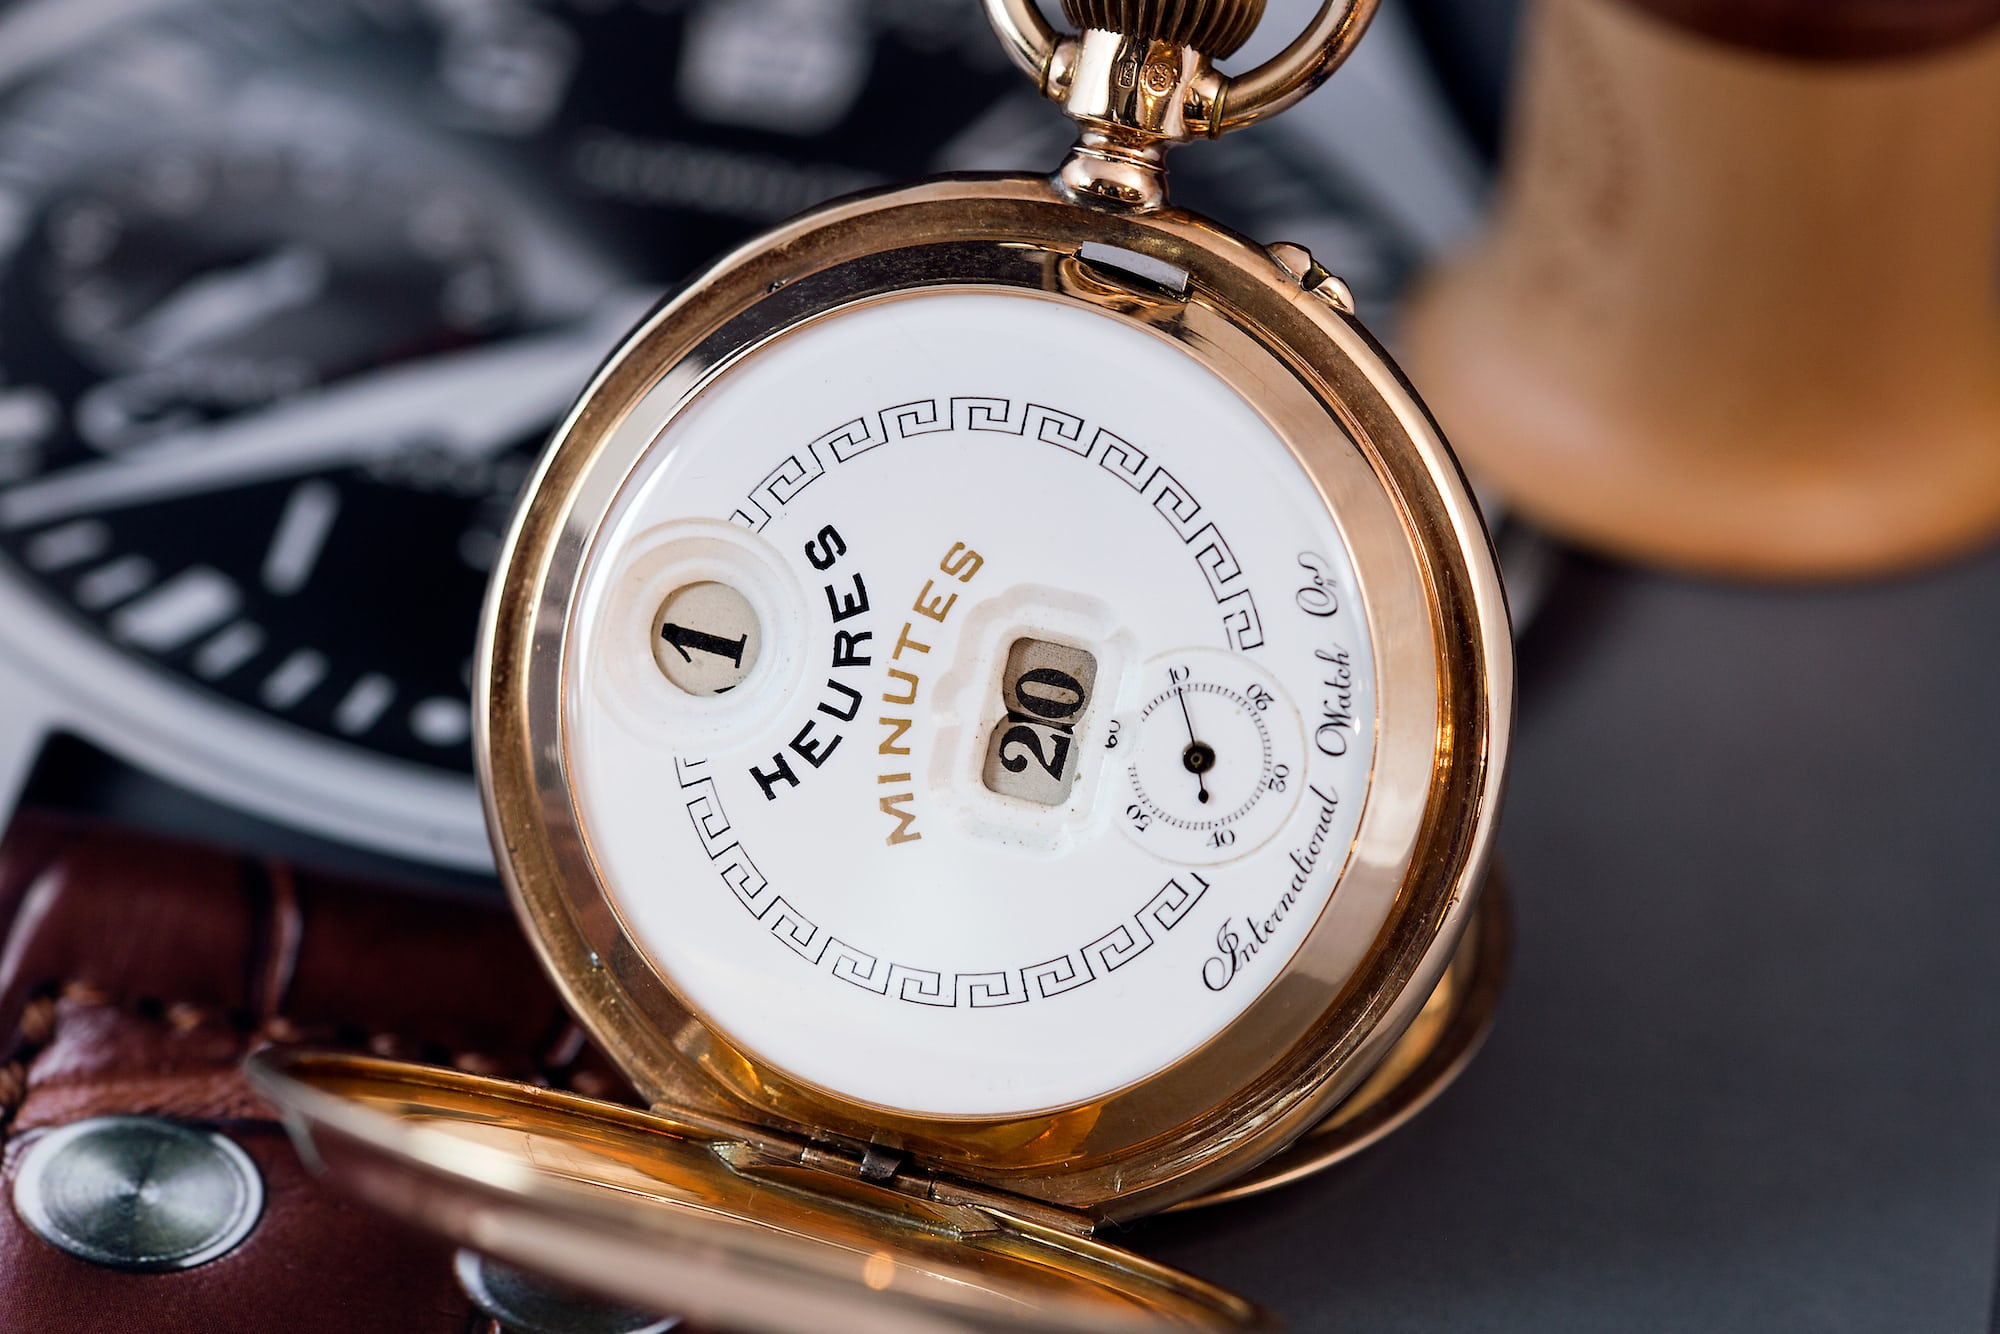 Pallweber pocket watch, late 18th century. Introducing: The IWC Tribute To Pallweber Edition '150 Years' (Live Pics & Pricing) Introducing: The IWC Tribute To Pallweber Edition '150 Years' (Live Pics & Pricing) IMG 3746